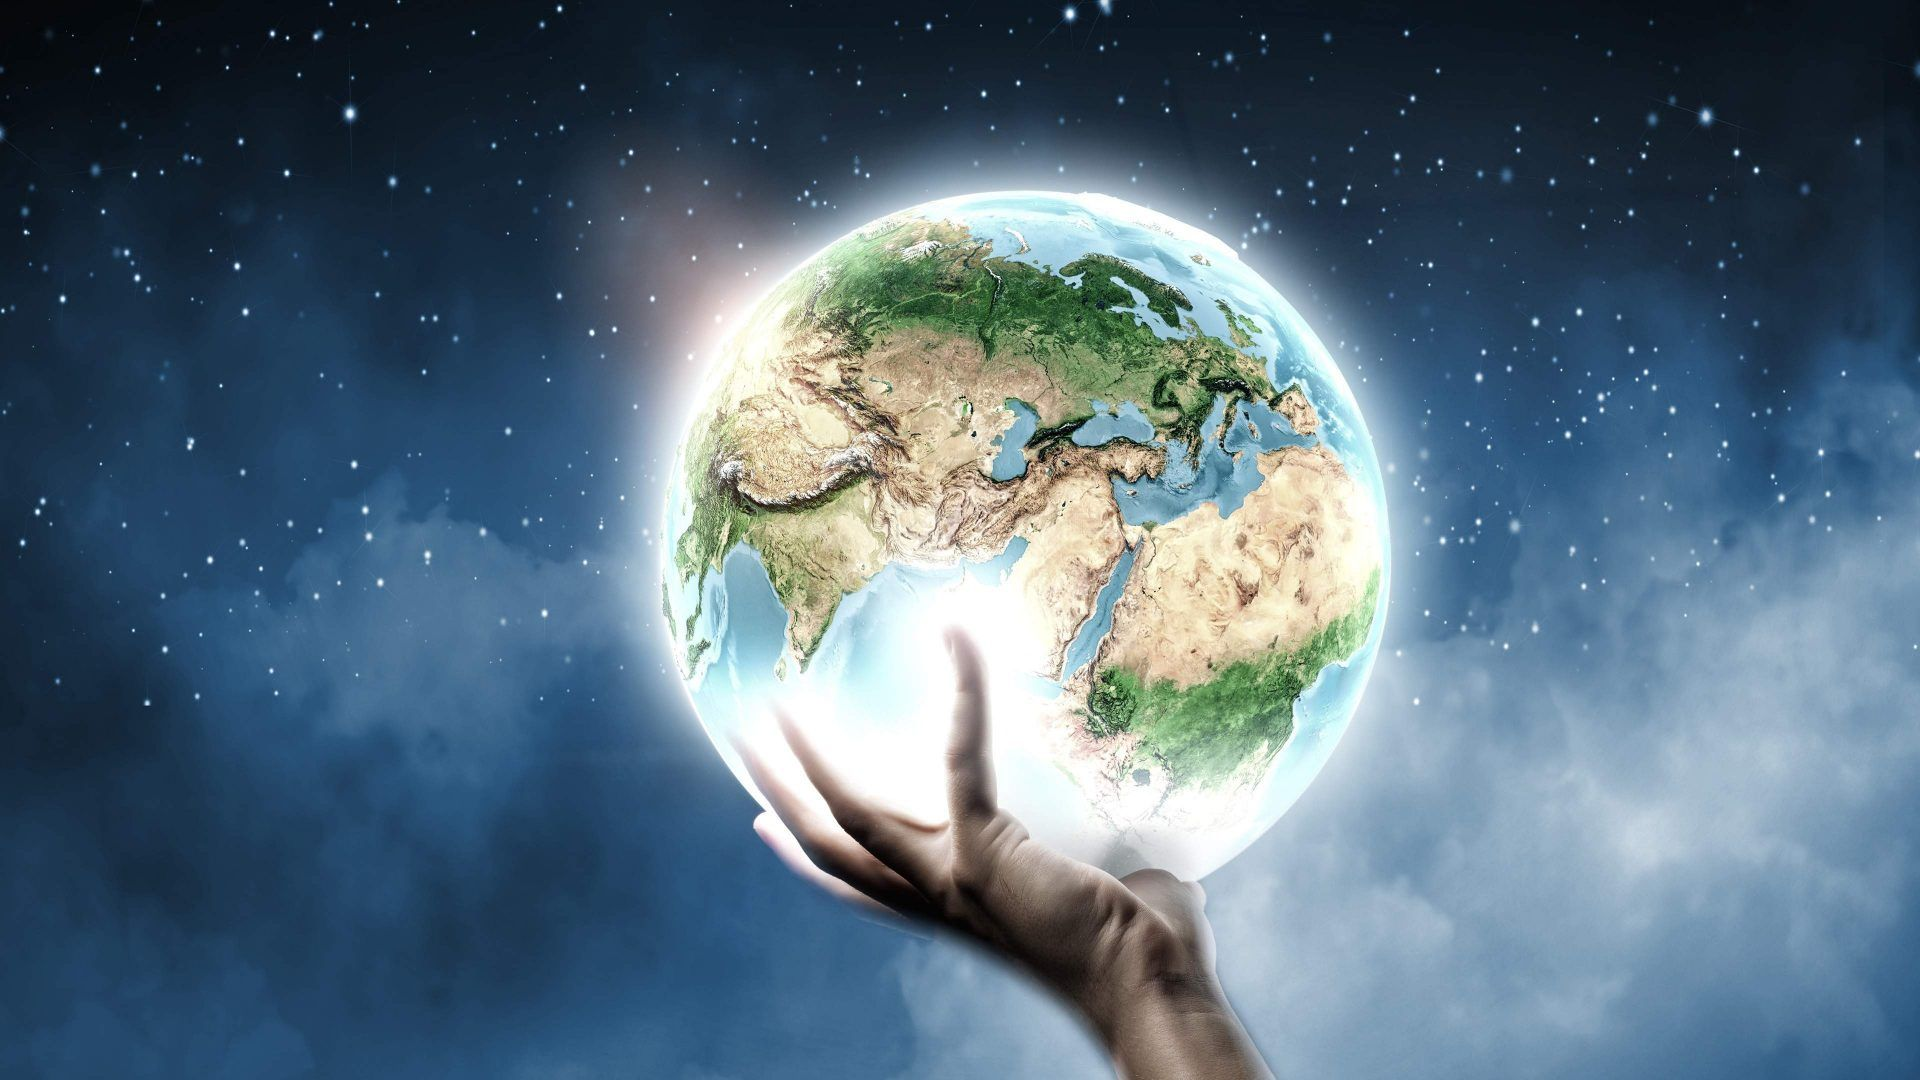 Earth Globe In Hand 4k Wallpaper 1920x1080 See More On Classy Bro Wallpaper Earth Earth Globe 4k Wallpapers 1920x1080